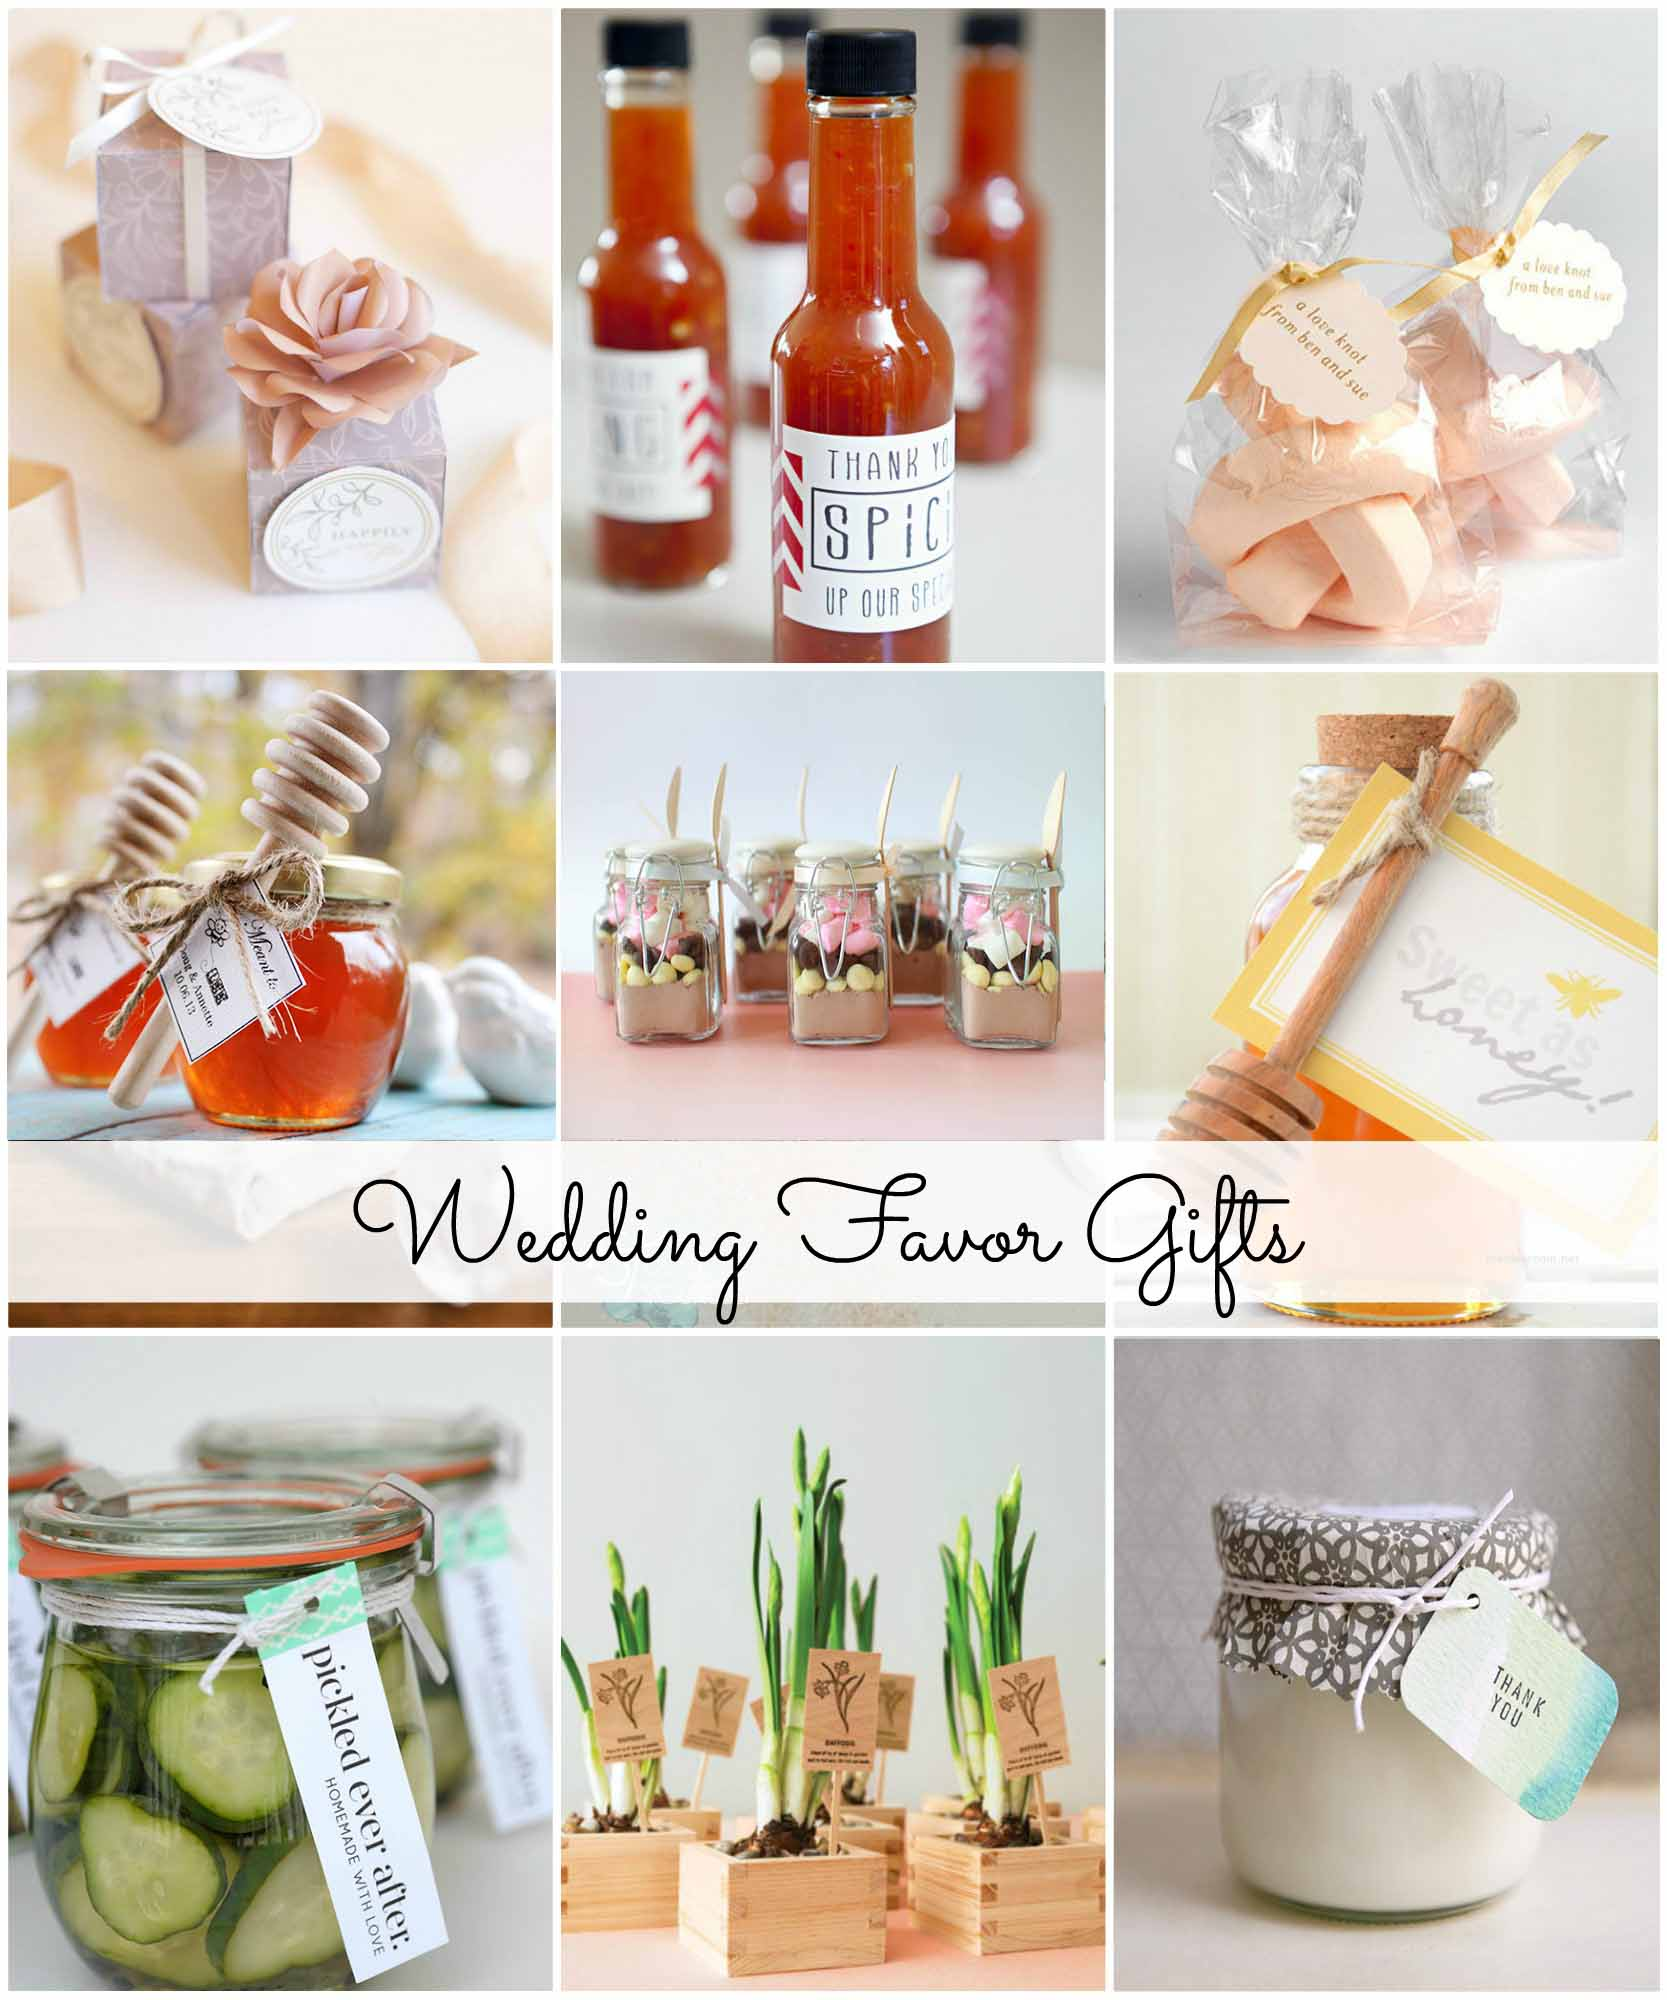 Wedding Favors Ideas For Guests : may 14 2015 wedding wedding favors wedding ideas wedding inspiration ...